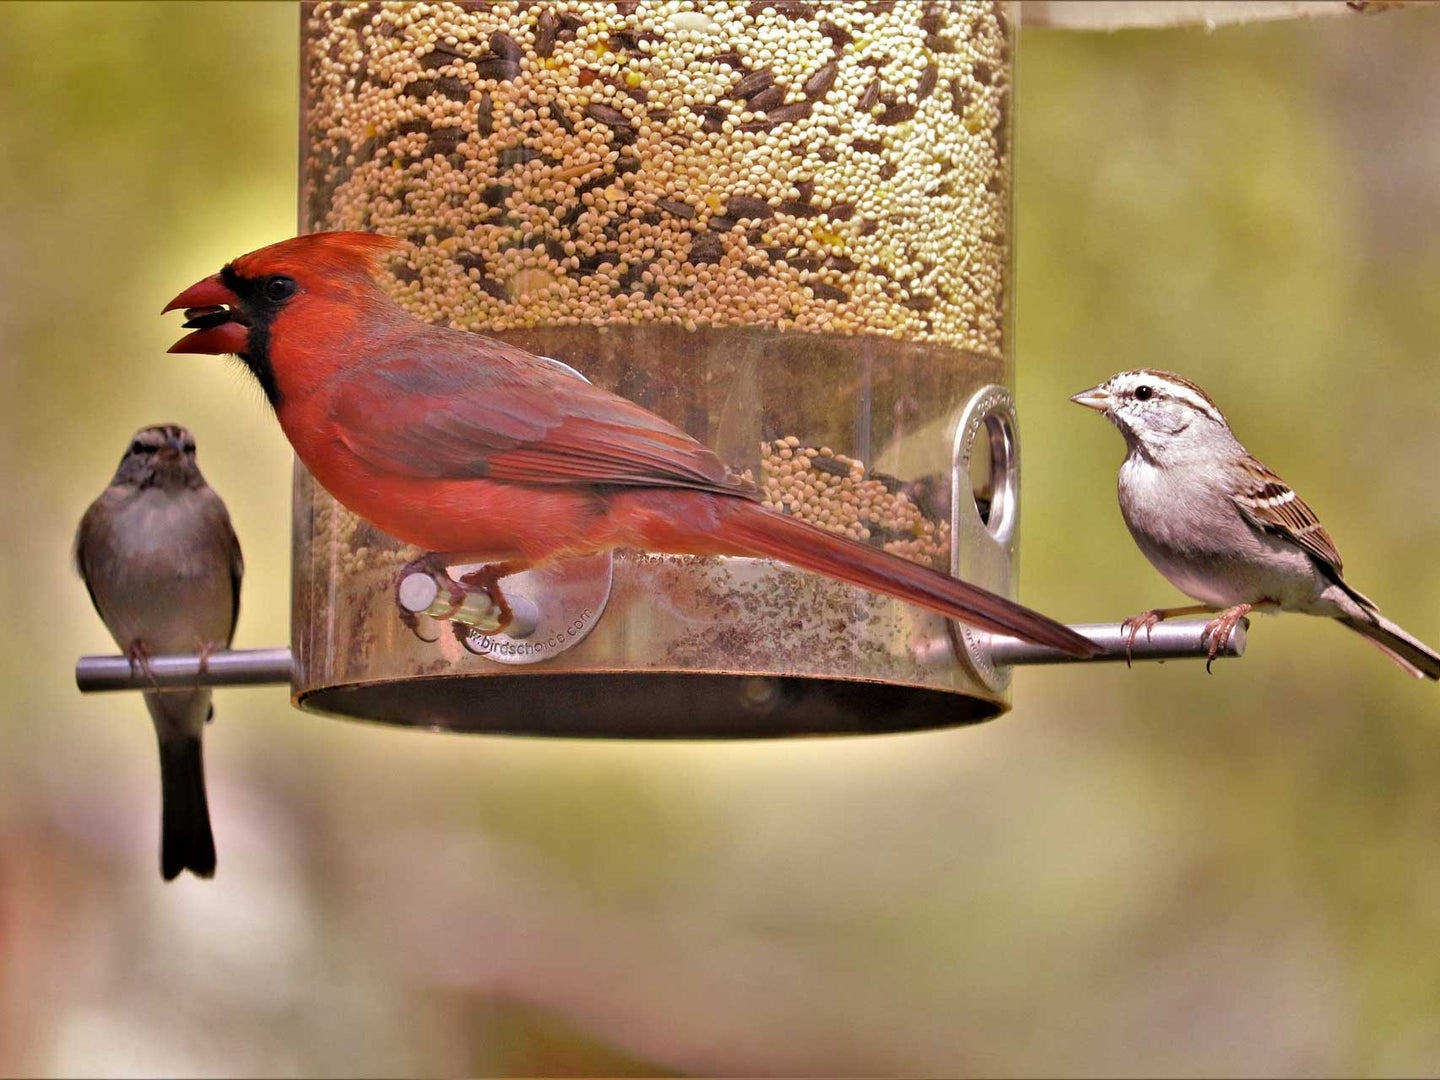 Three Things To Consider When Buying Bird Seed